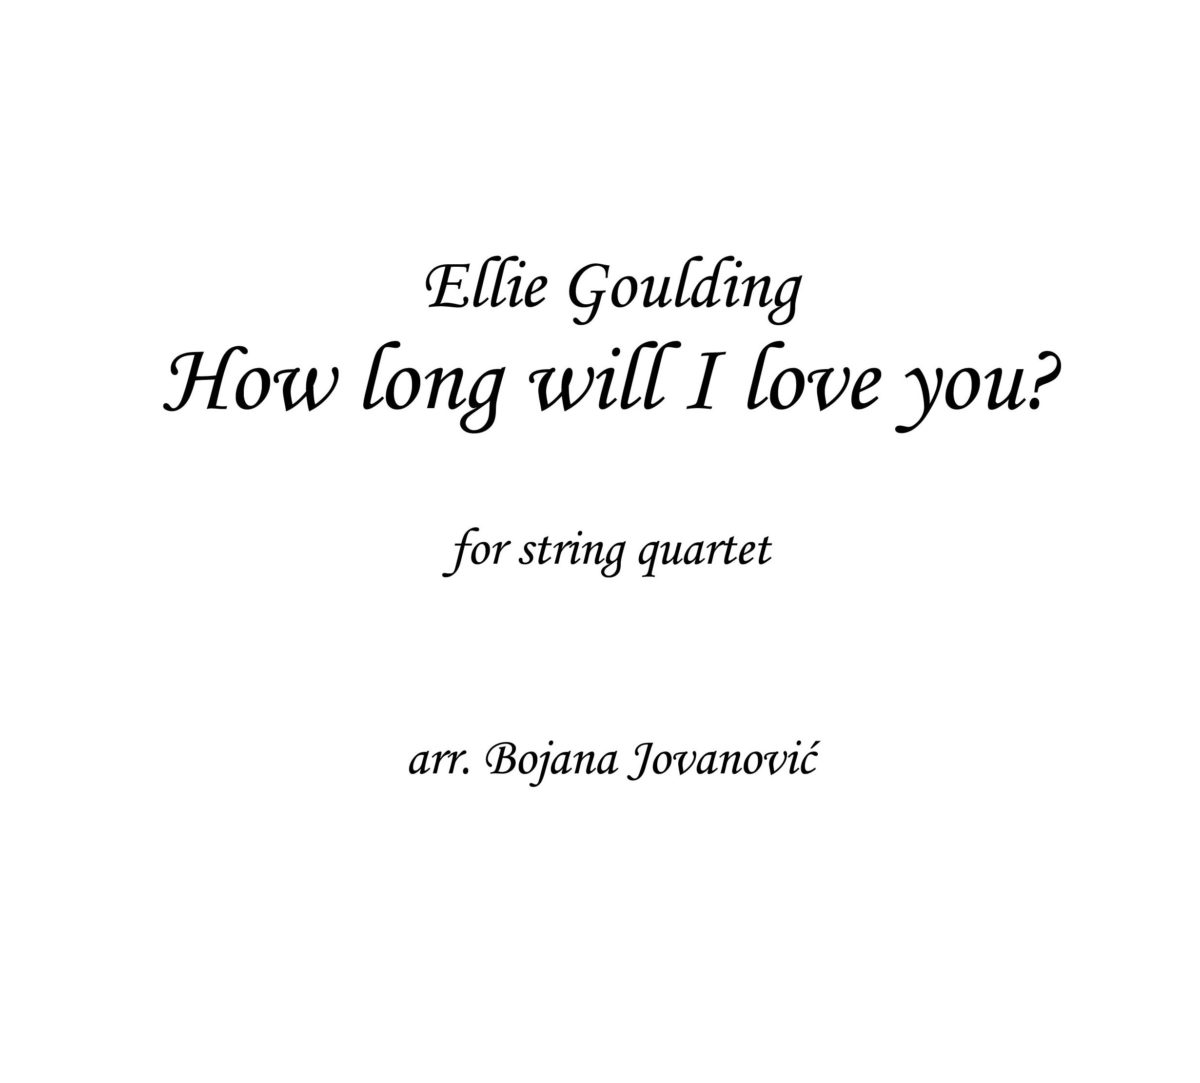 How long will I love you (Ellie Goulding) - Sheet Music